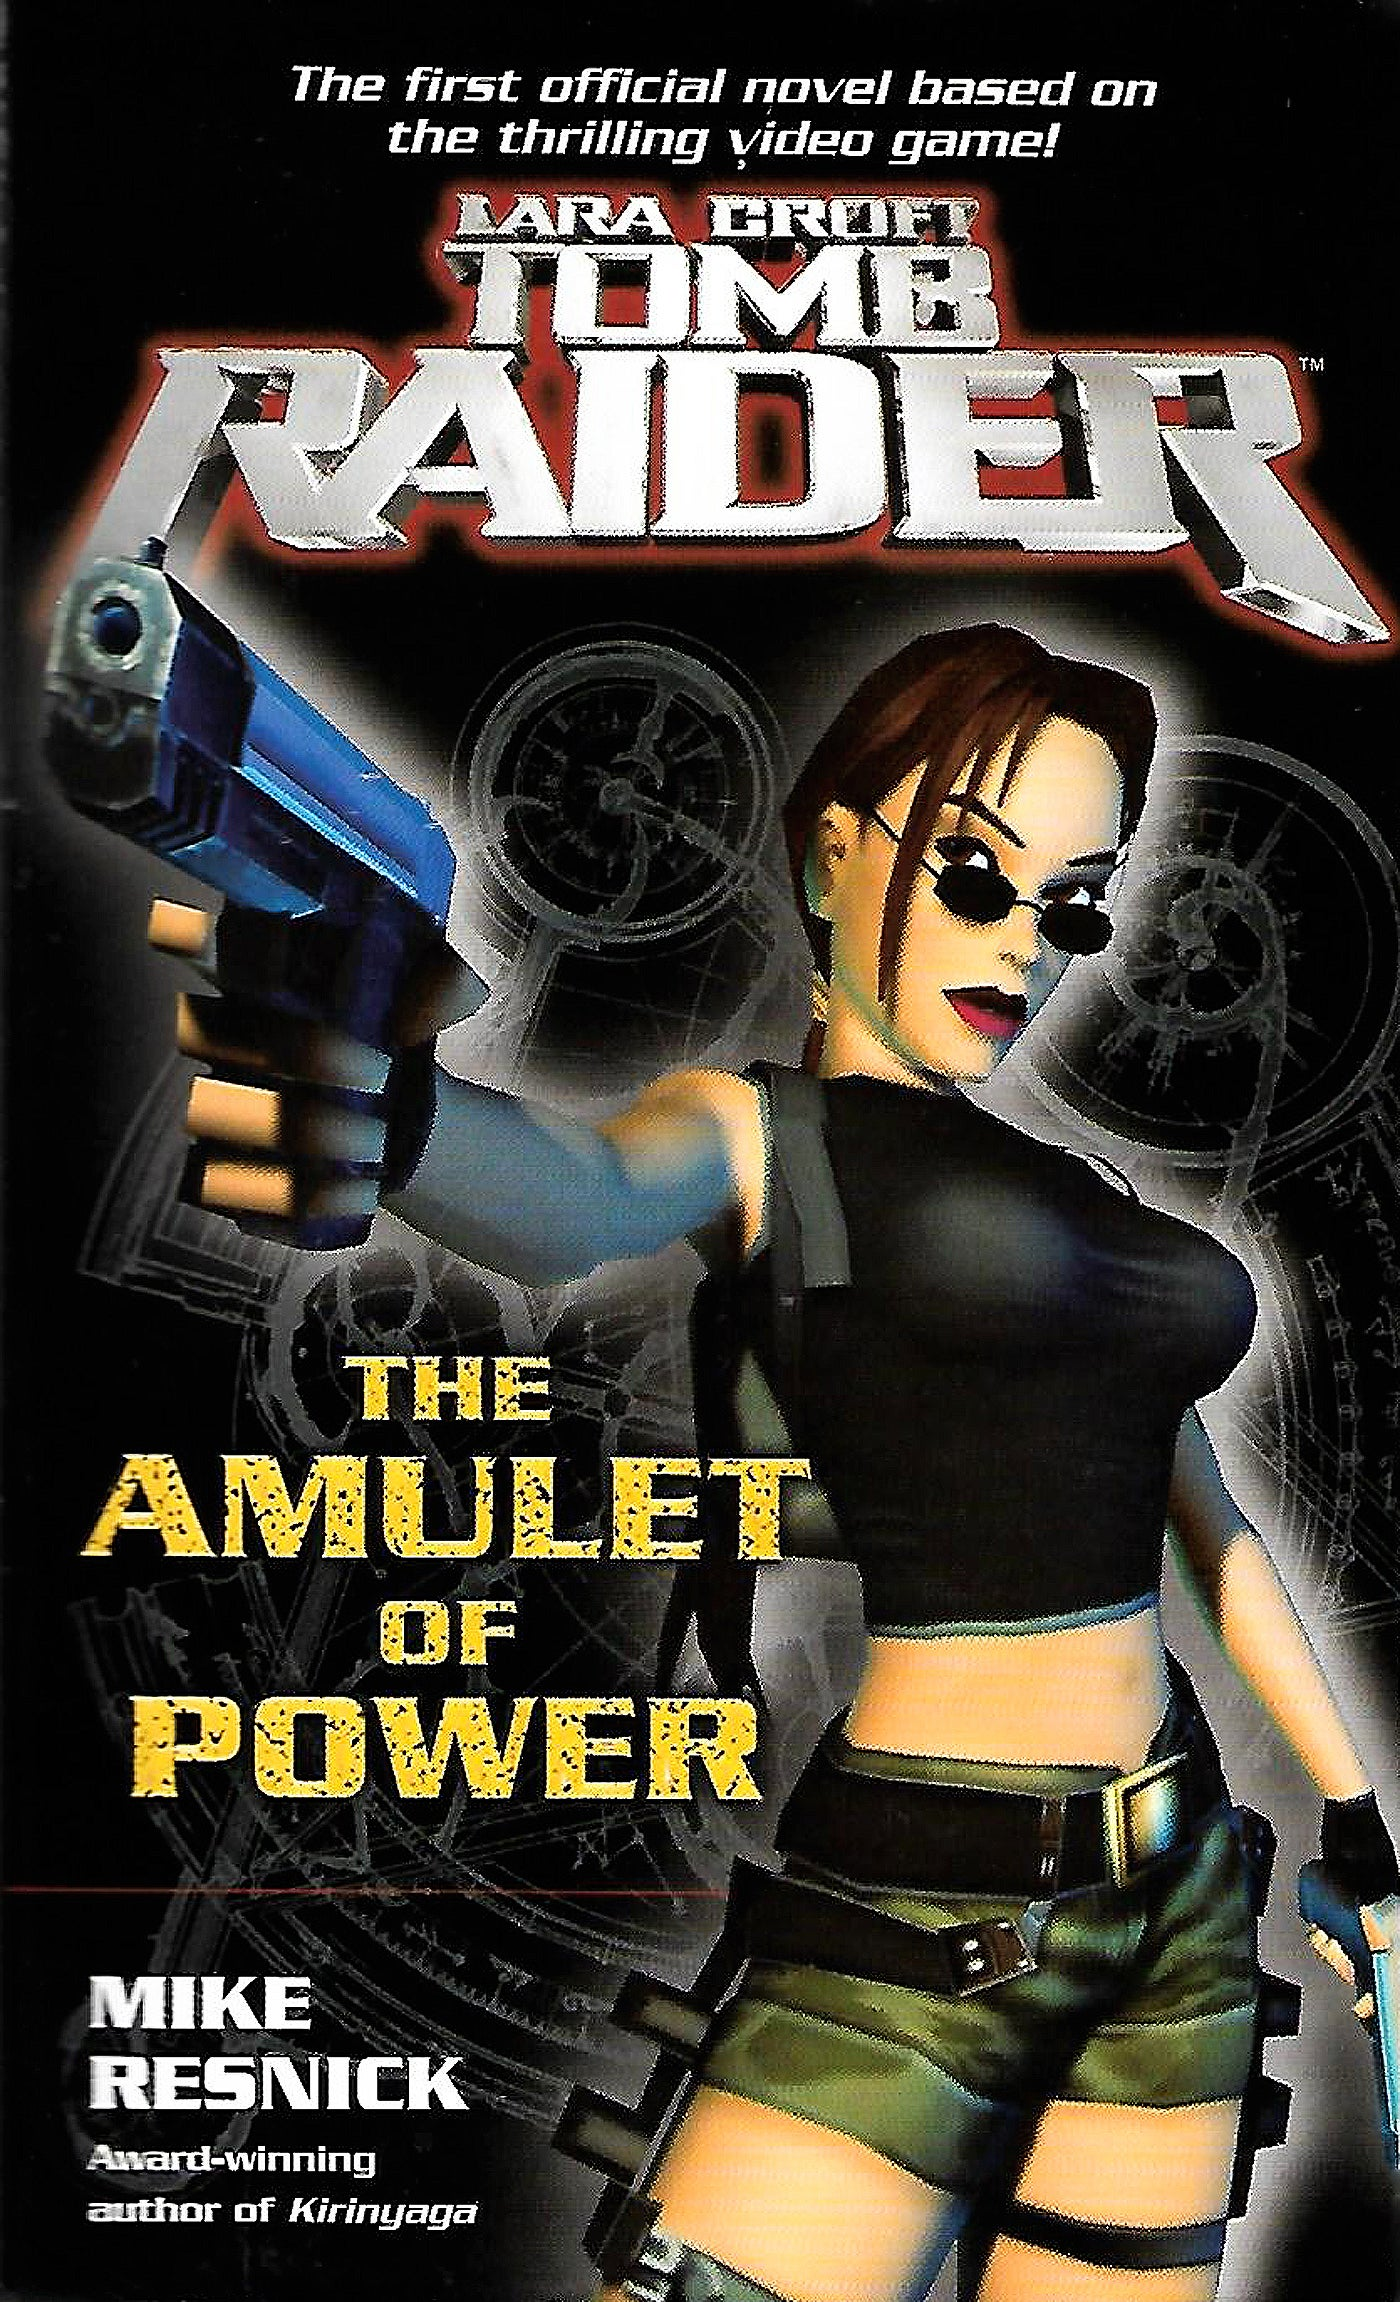 The front cover of novel Lara Croft Tomb Raider: The Lost Amulet